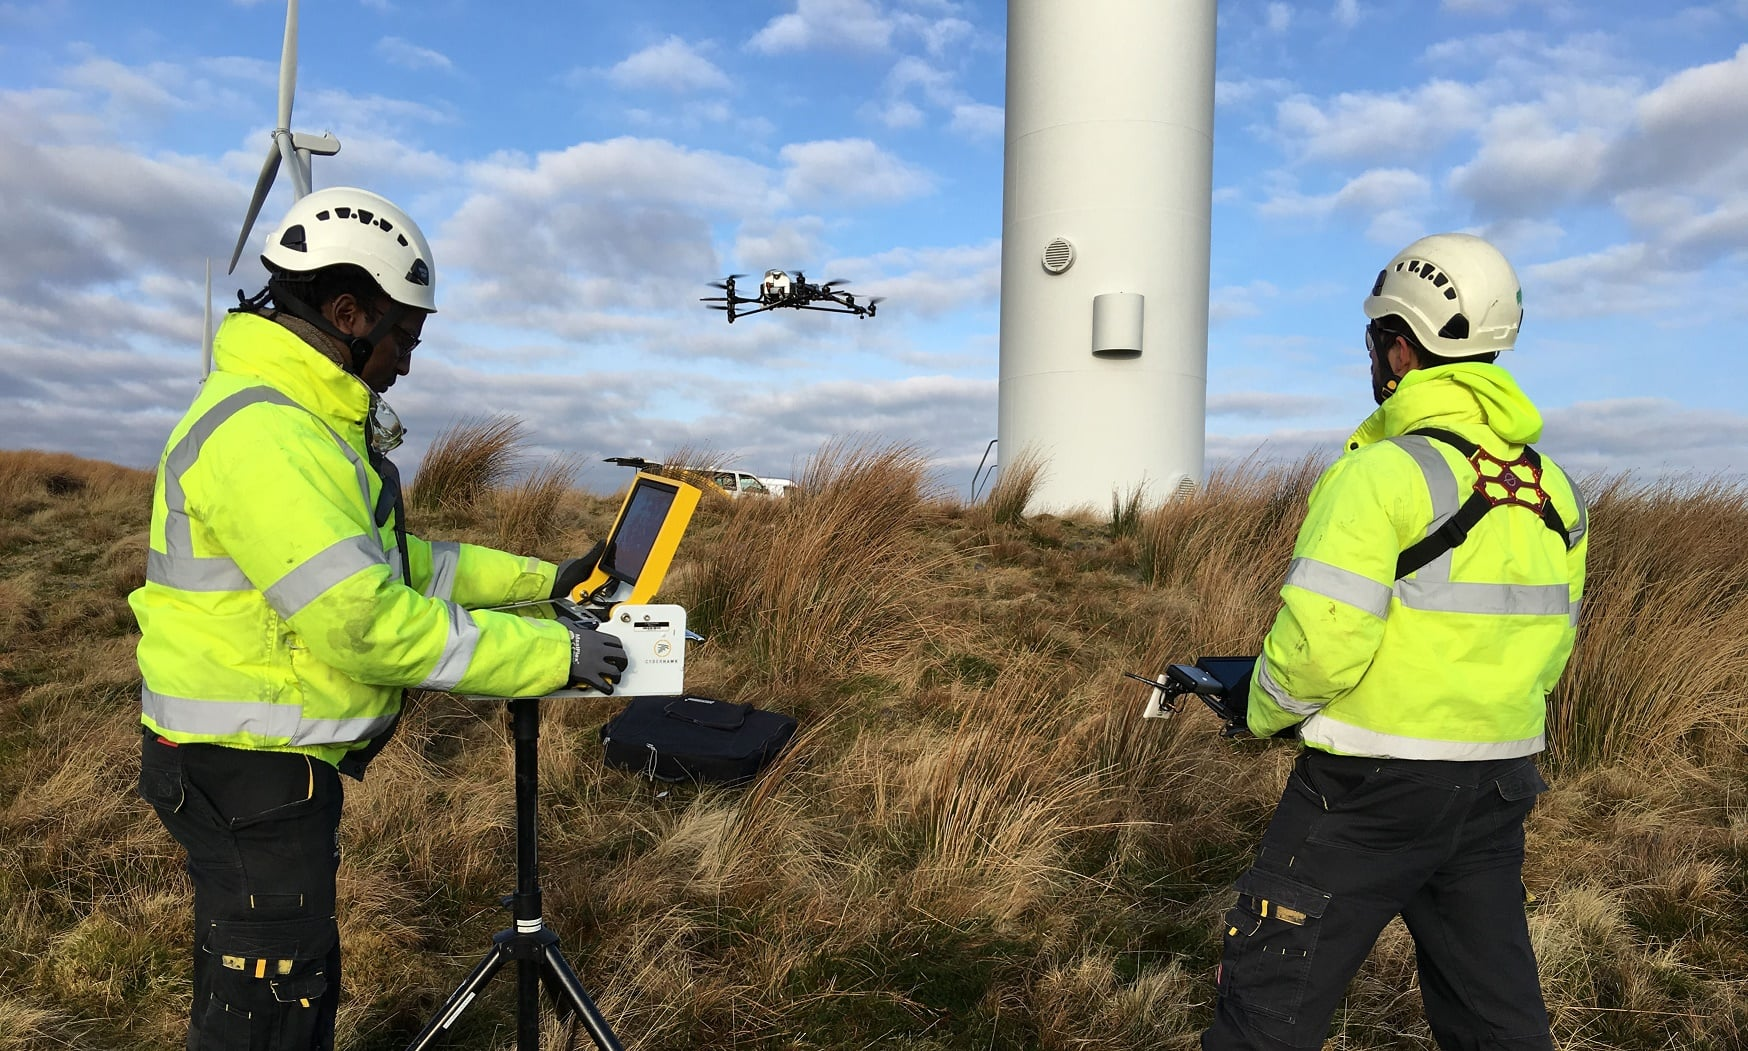 Cyberhawk-Innovations- Drone Inspections Company Marks Notable Success In Wind